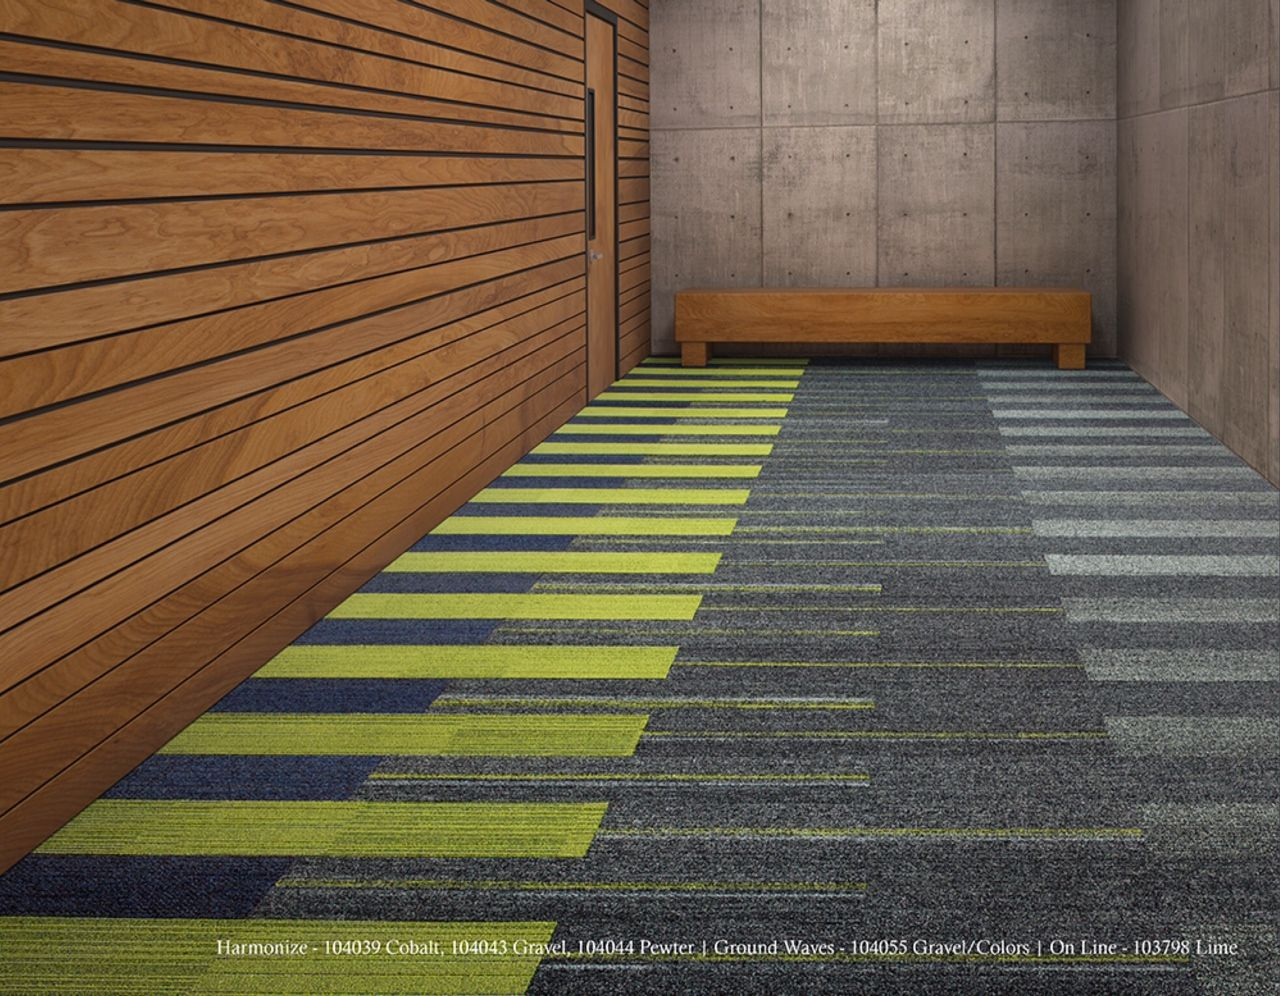 Harmonize Amp Ground Waves Interface Carpet Conceptual Idea